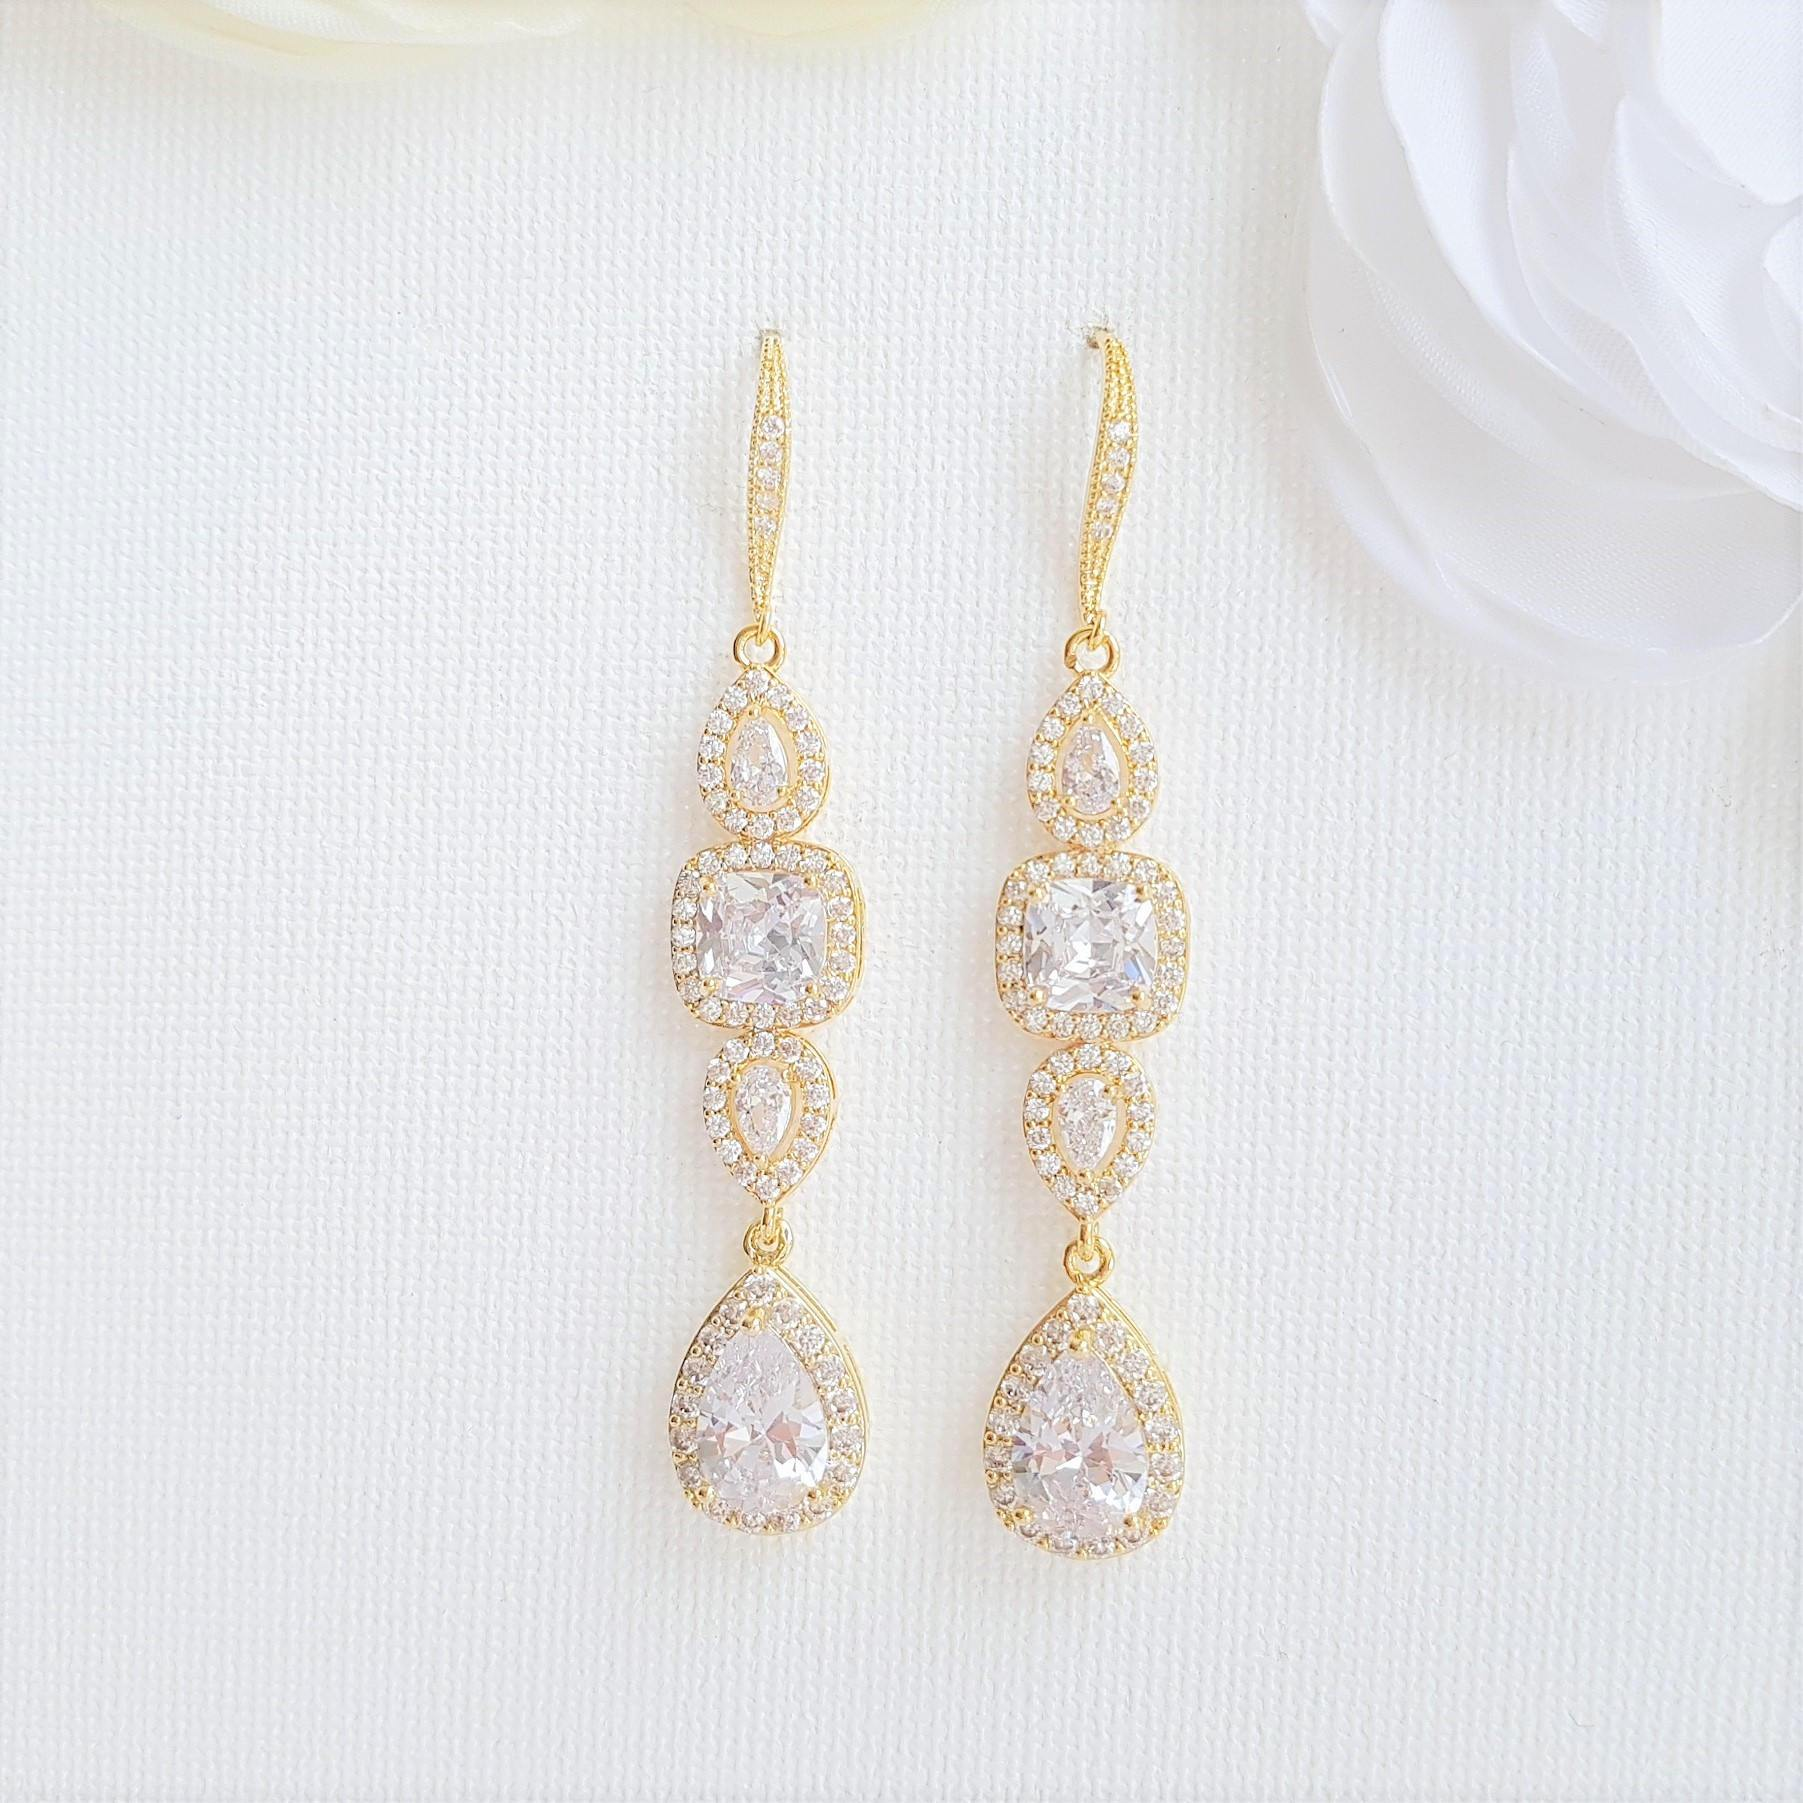 Gold Drop Earrings Weddings- Gianna - PoetryDesigns